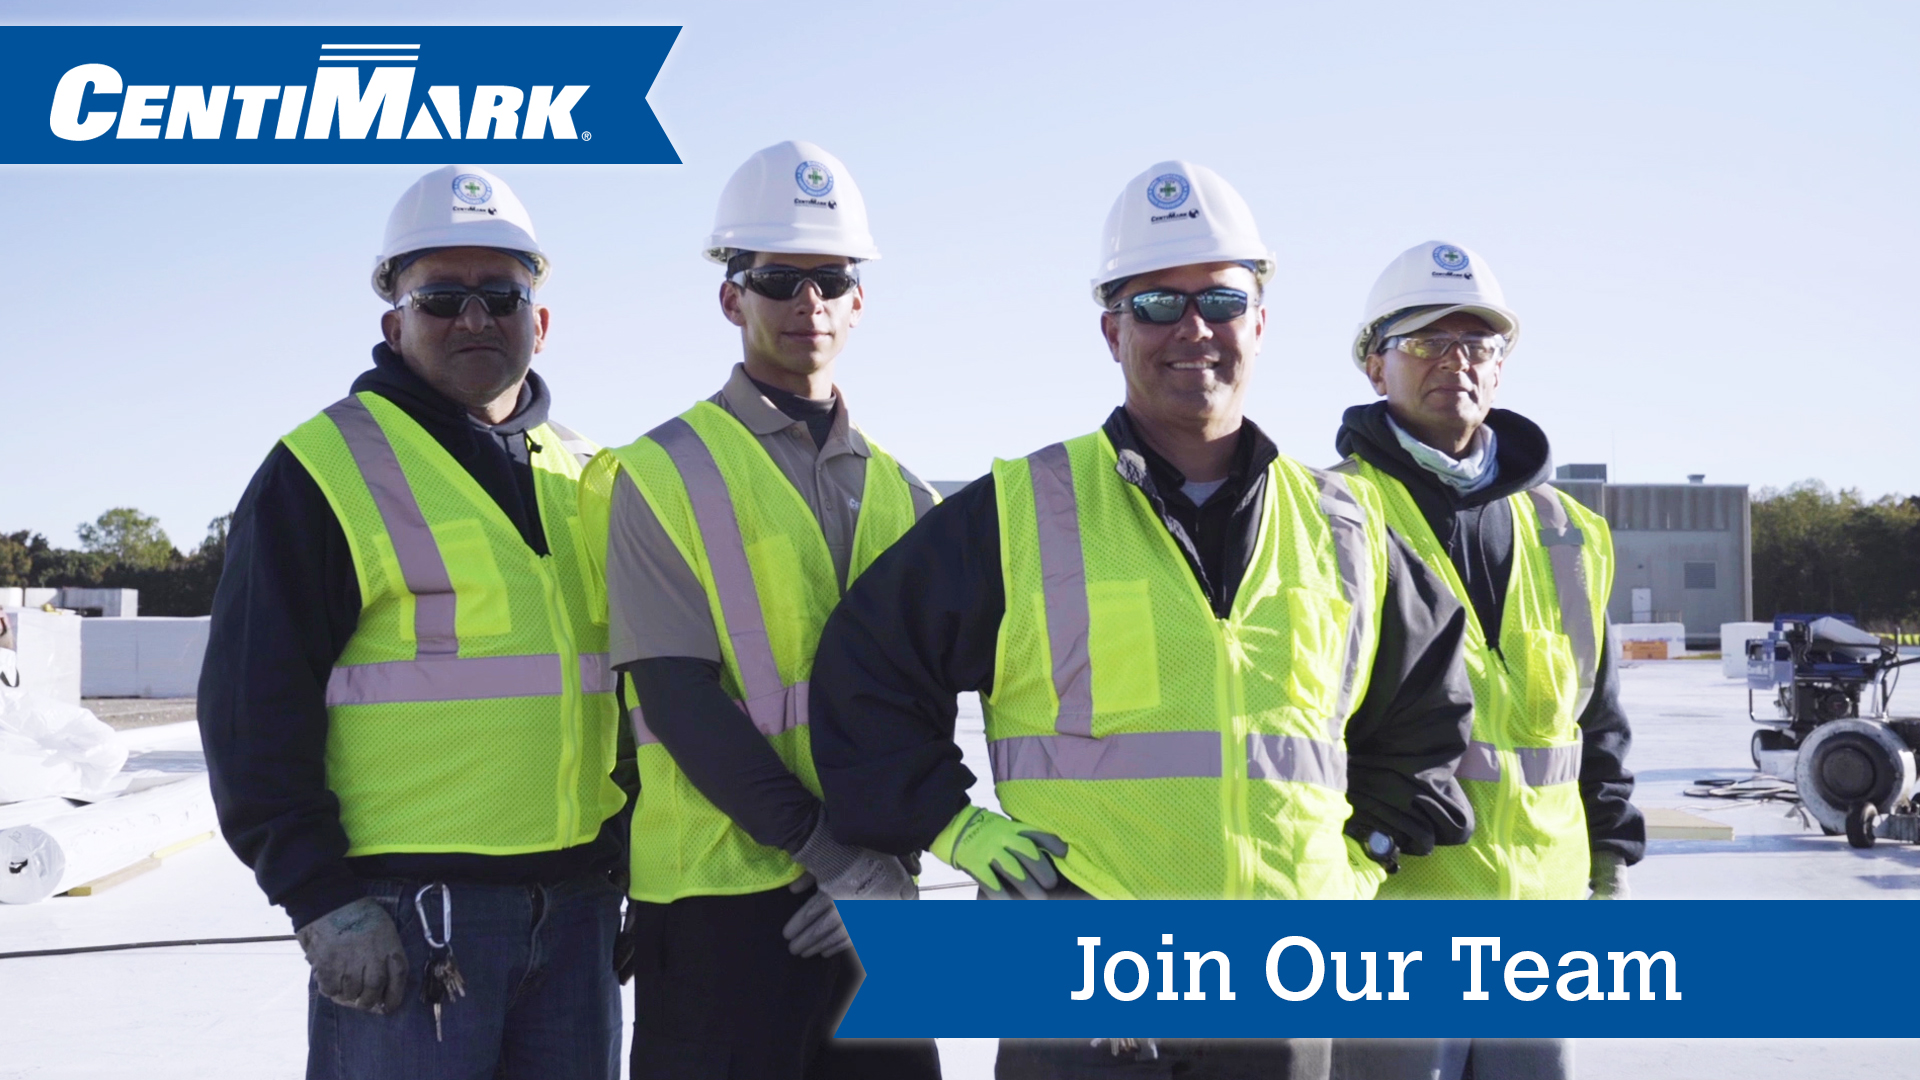 Join Our Team | CentiMark Careers